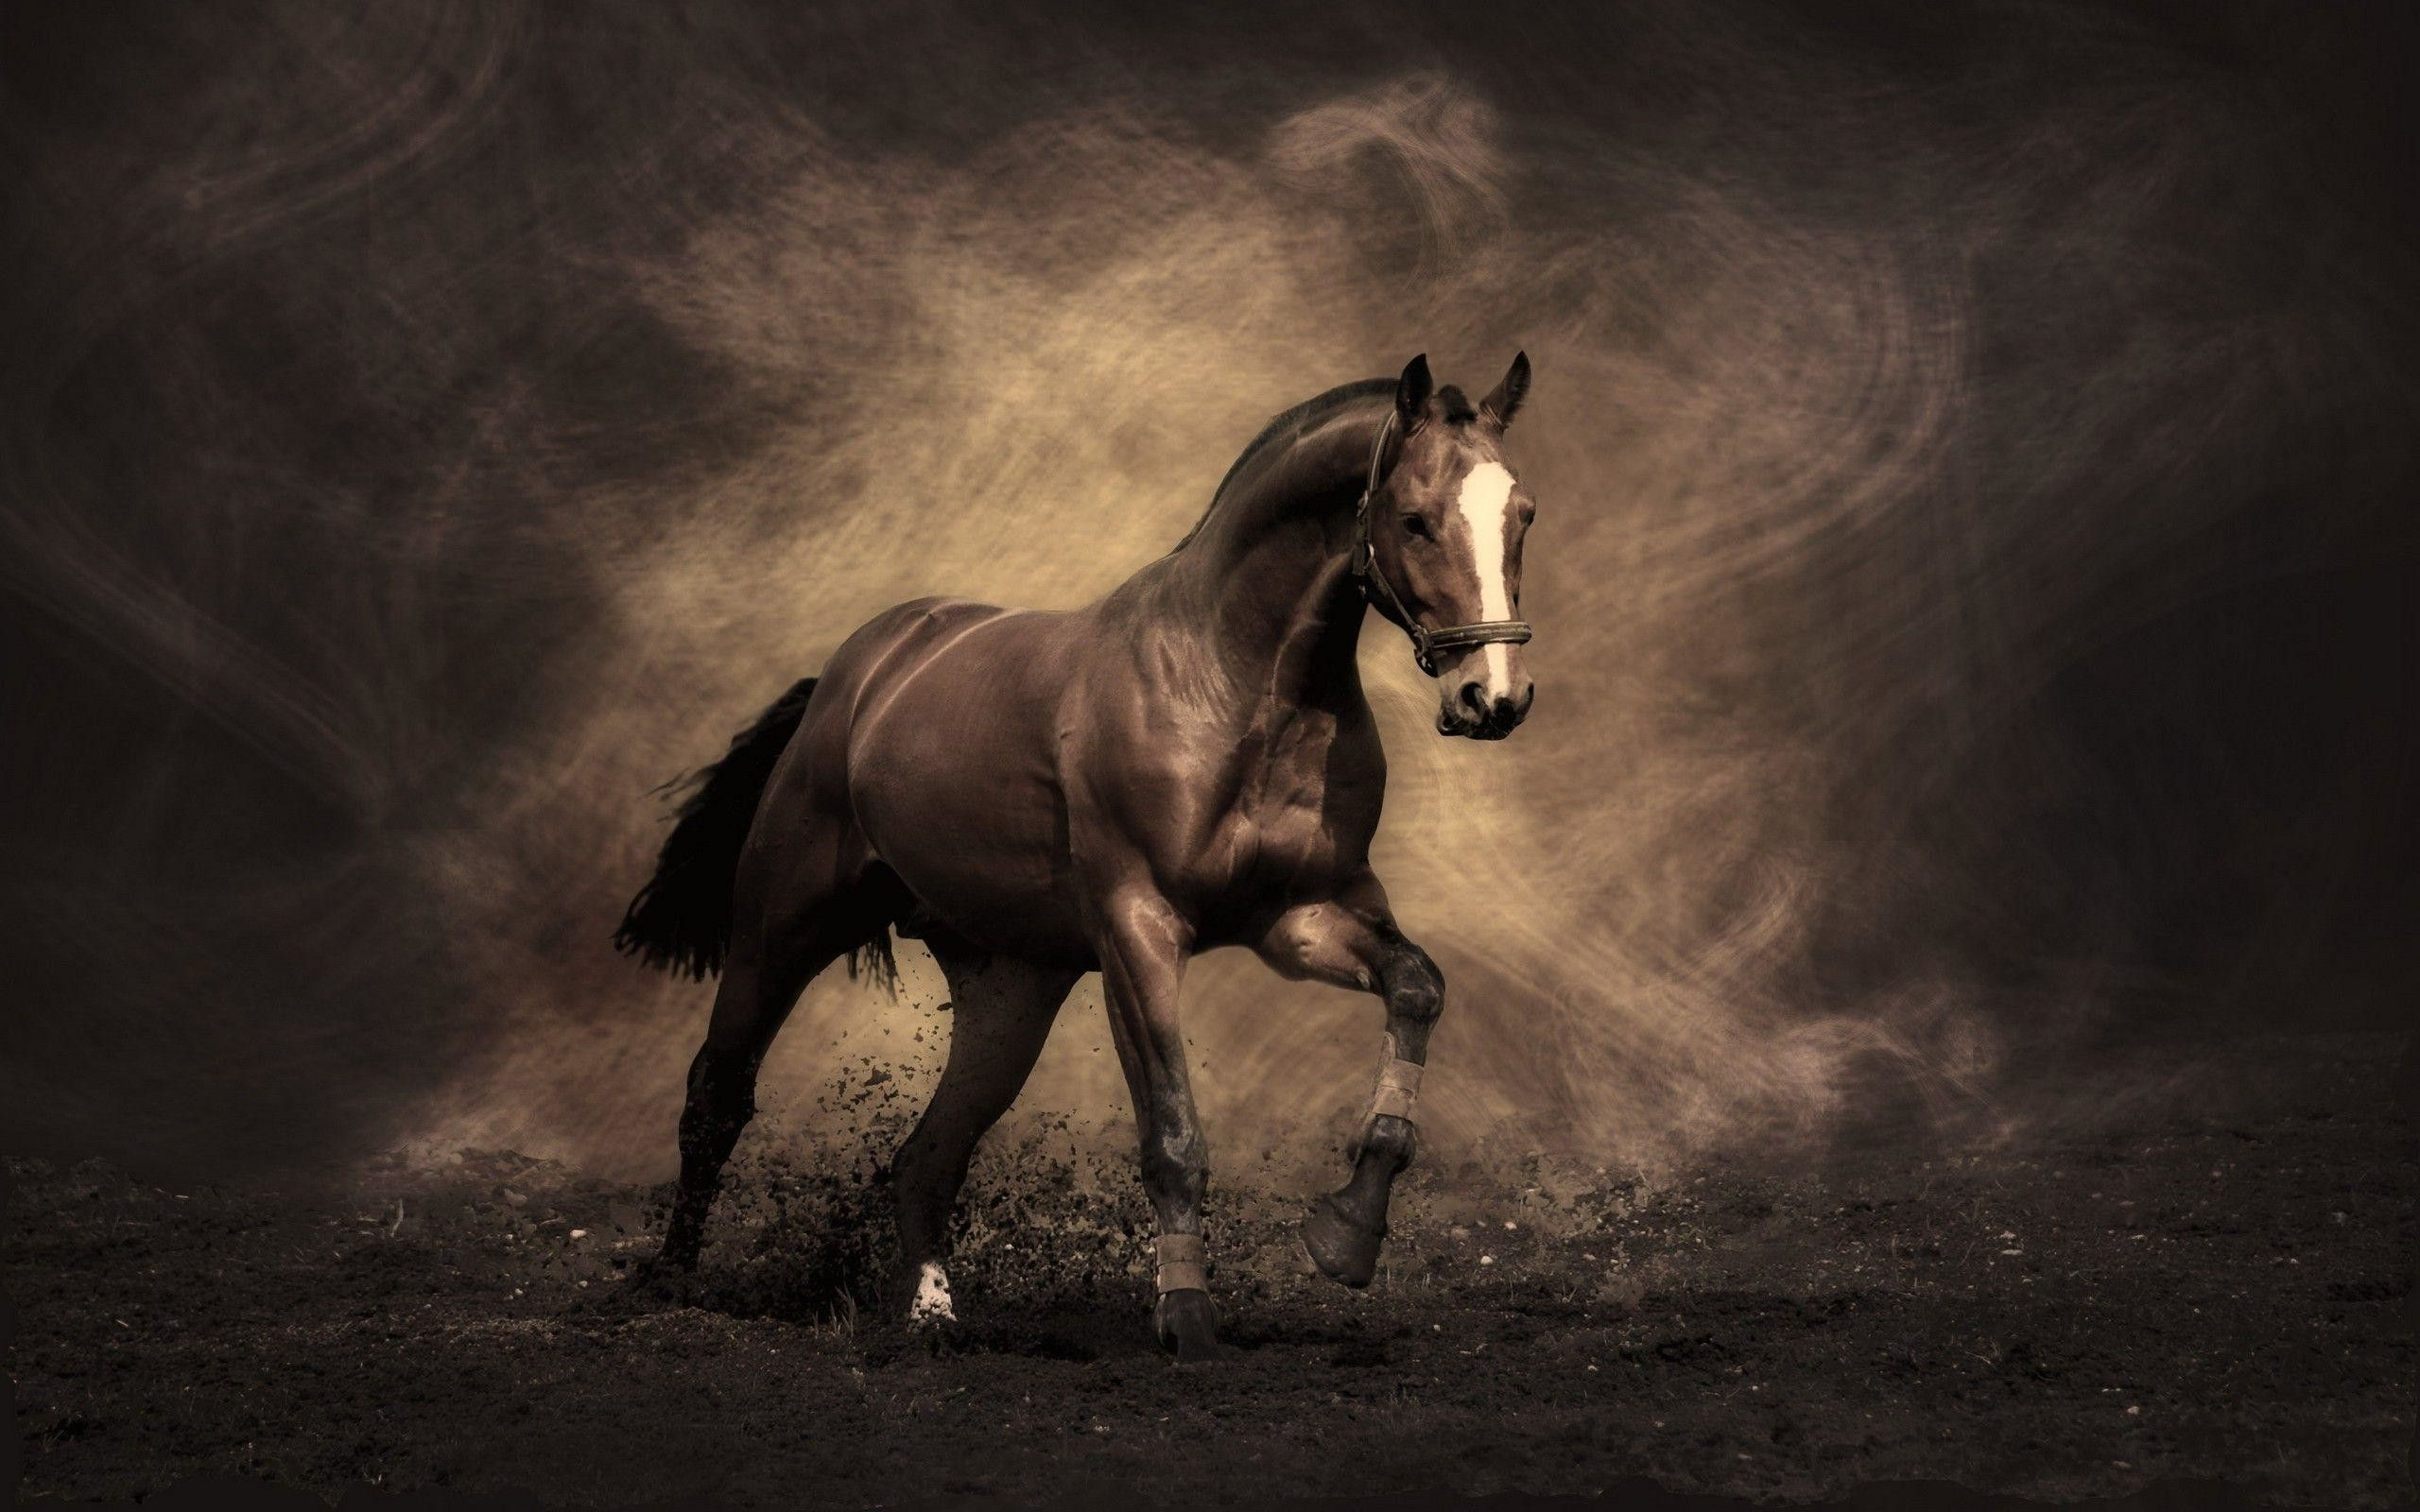 Hd Horse Wallpapers Top Free Hd Horse Backgrounds Wallpaperaccess